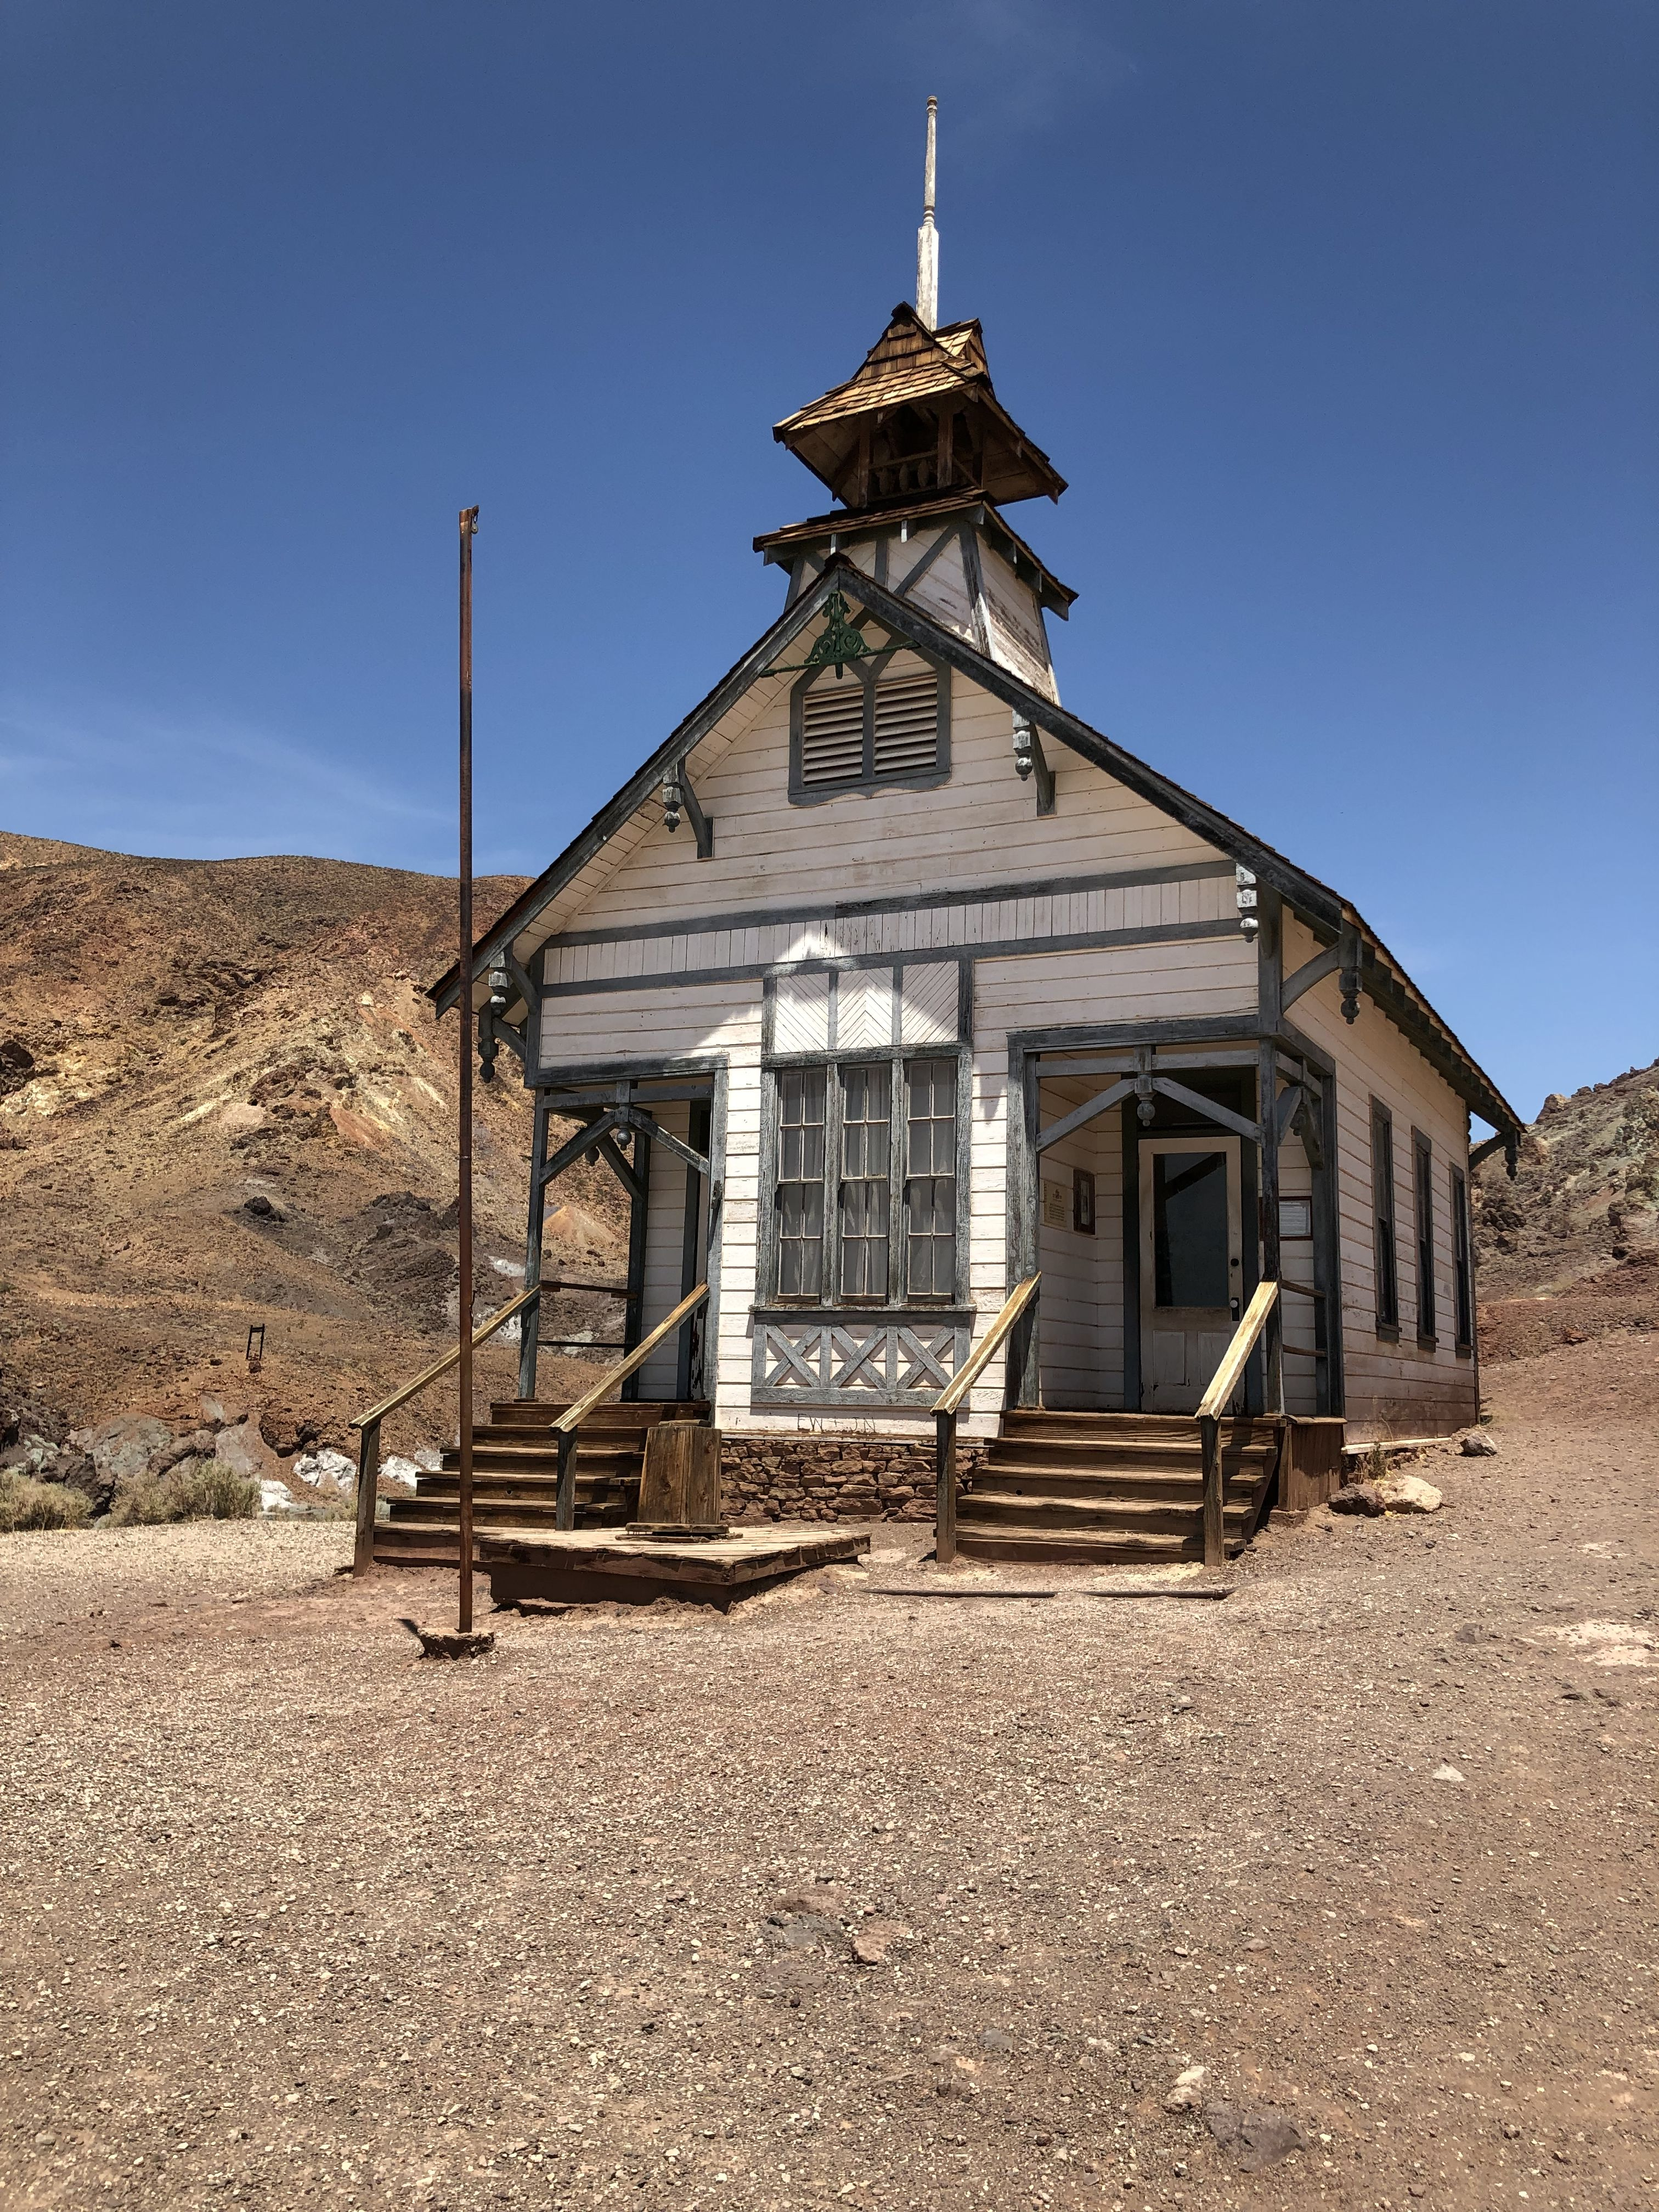 Schoolhouse calico Calico ghost town, Ghost towns